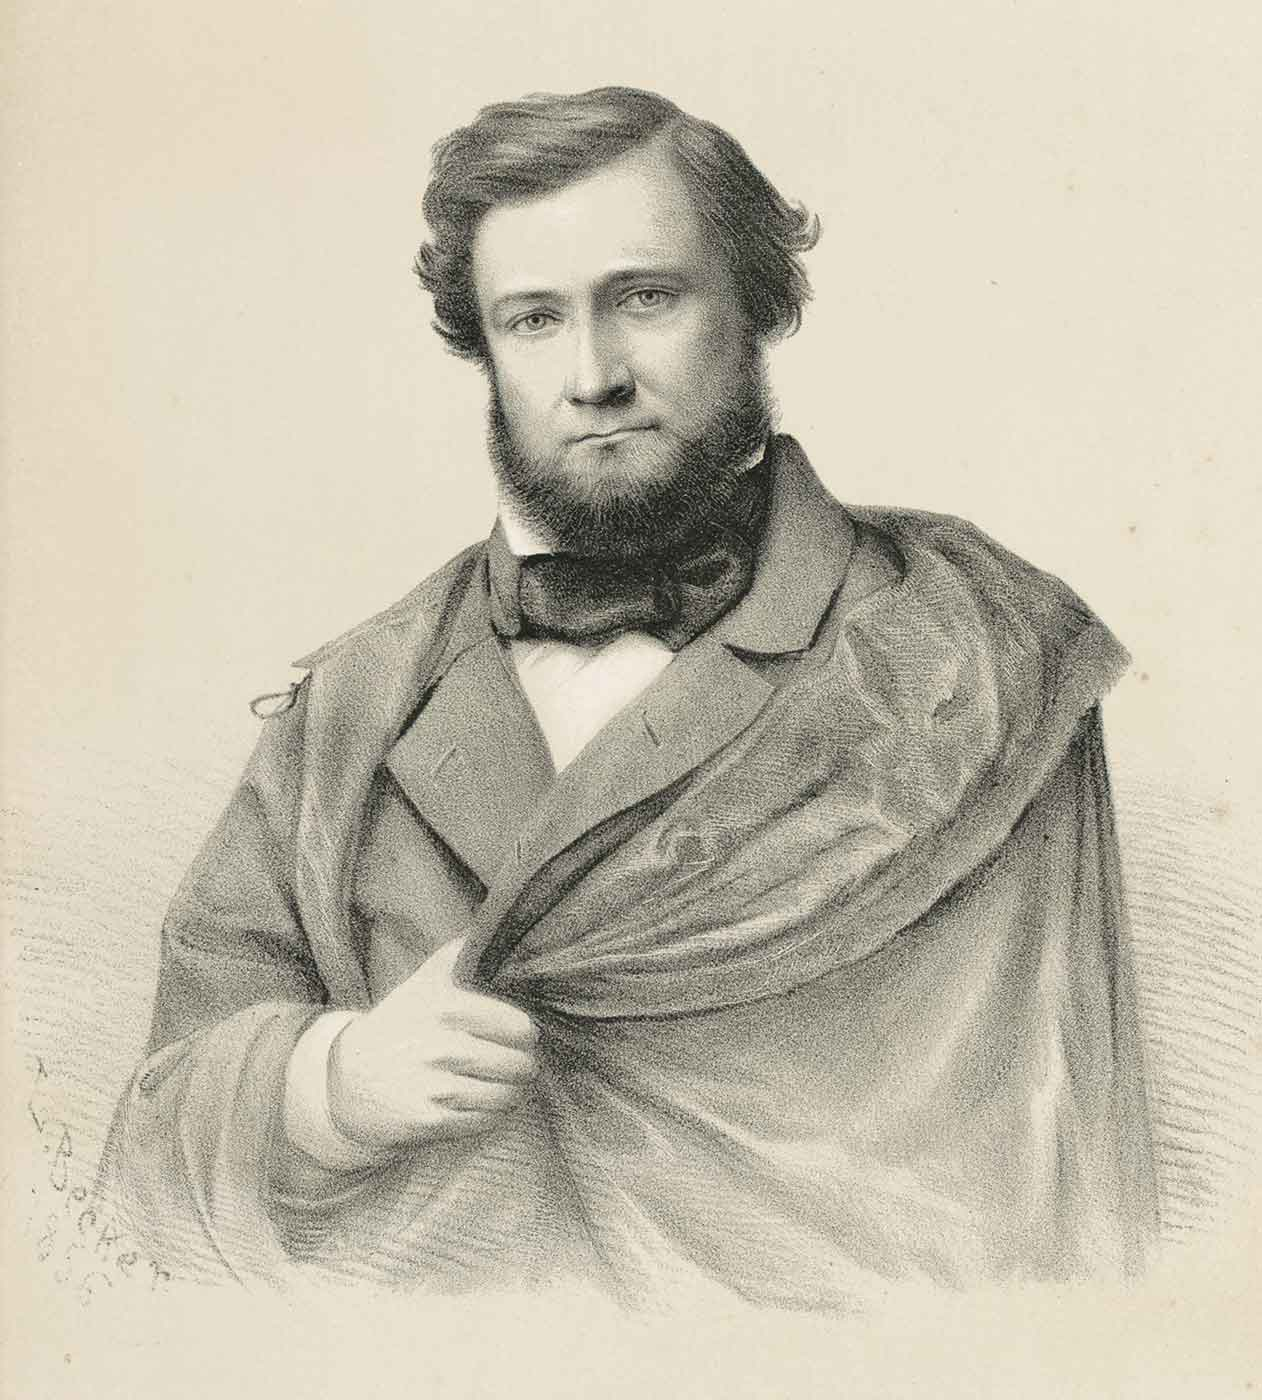 Sketch of a portrait of a man with a beard and wearing 19th Century attire. - click to view larger image